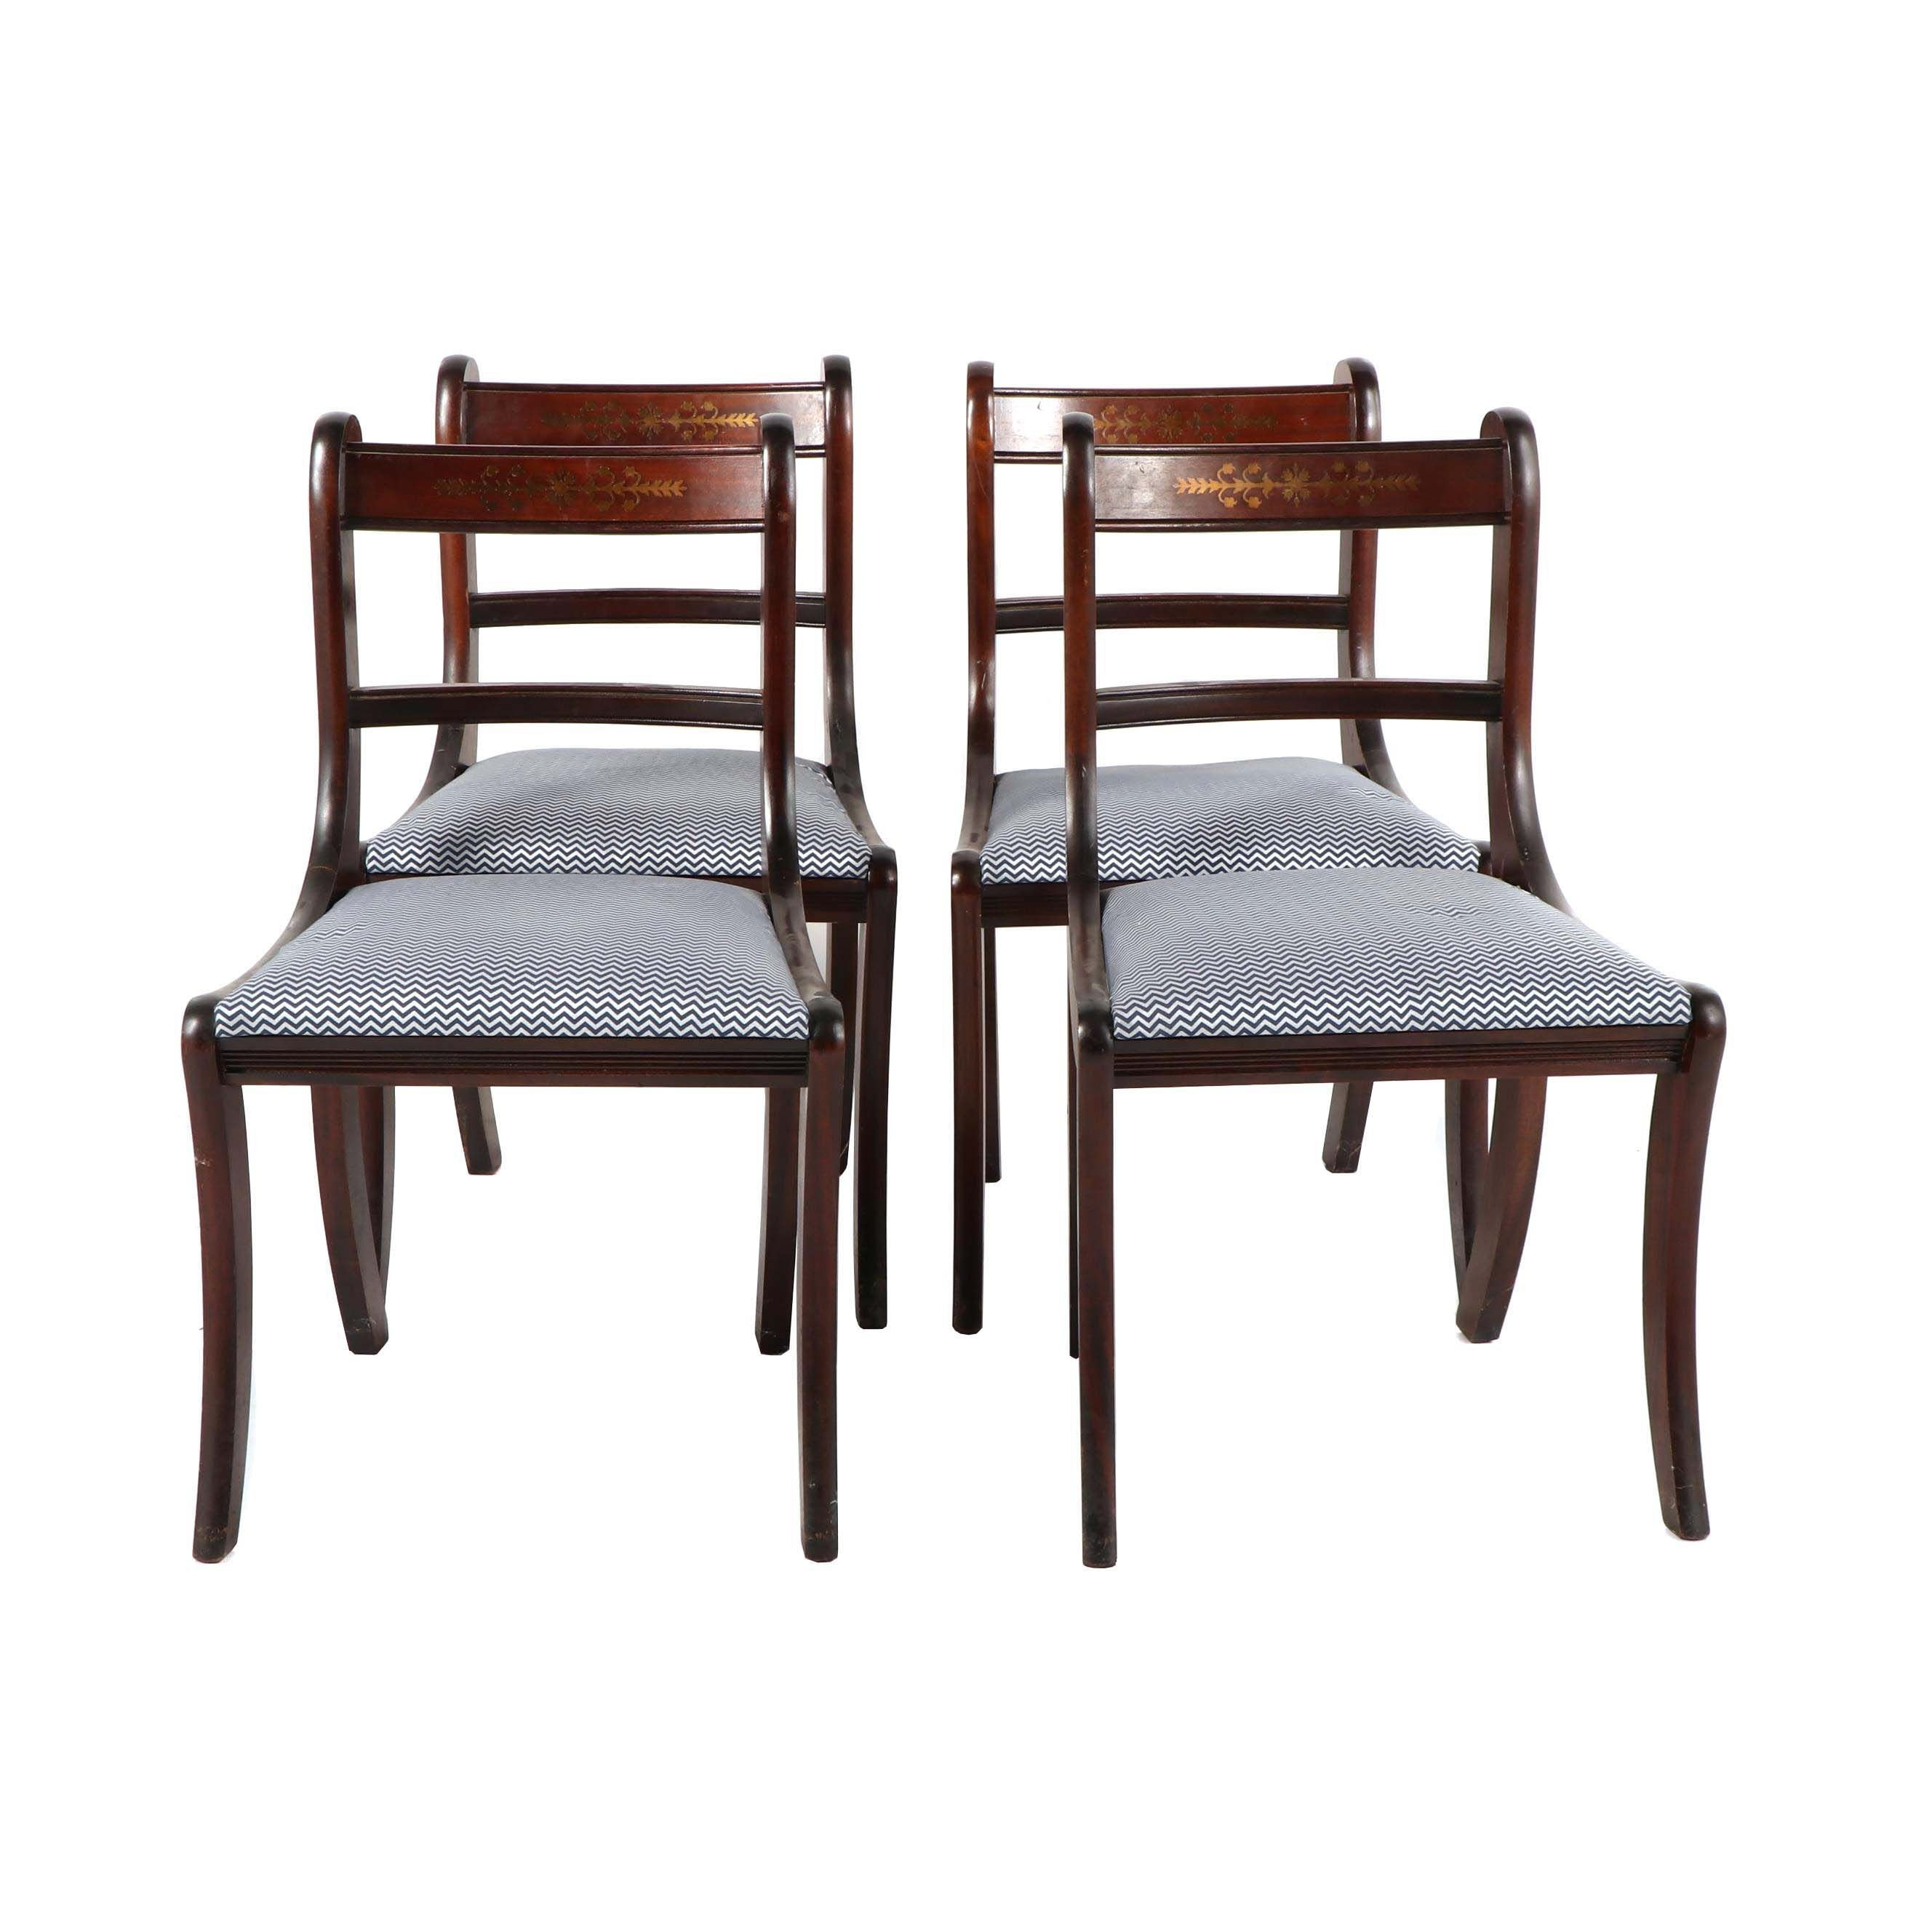 Federal Style Upholstered Dining Chairs, Mid 20th Century